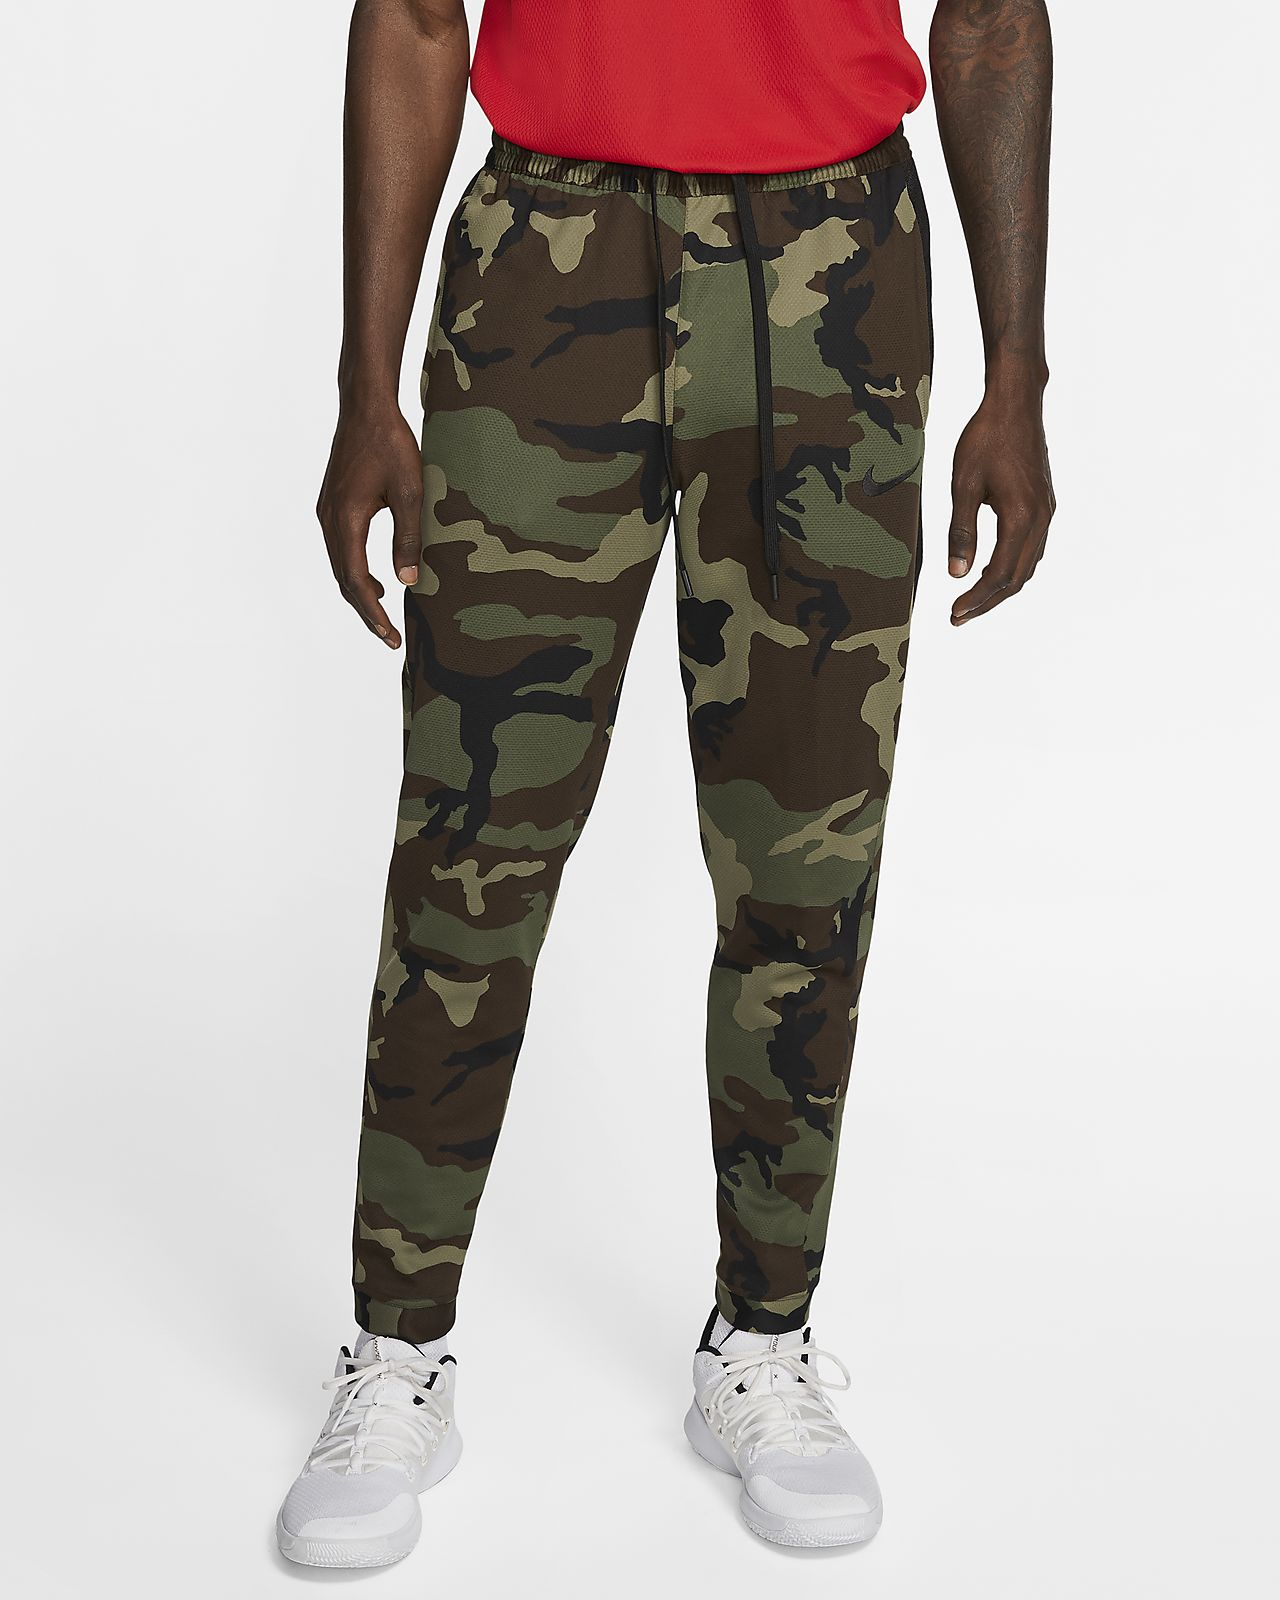 Nike Therma Flex Showtime Men's Basketball Printed Trousers